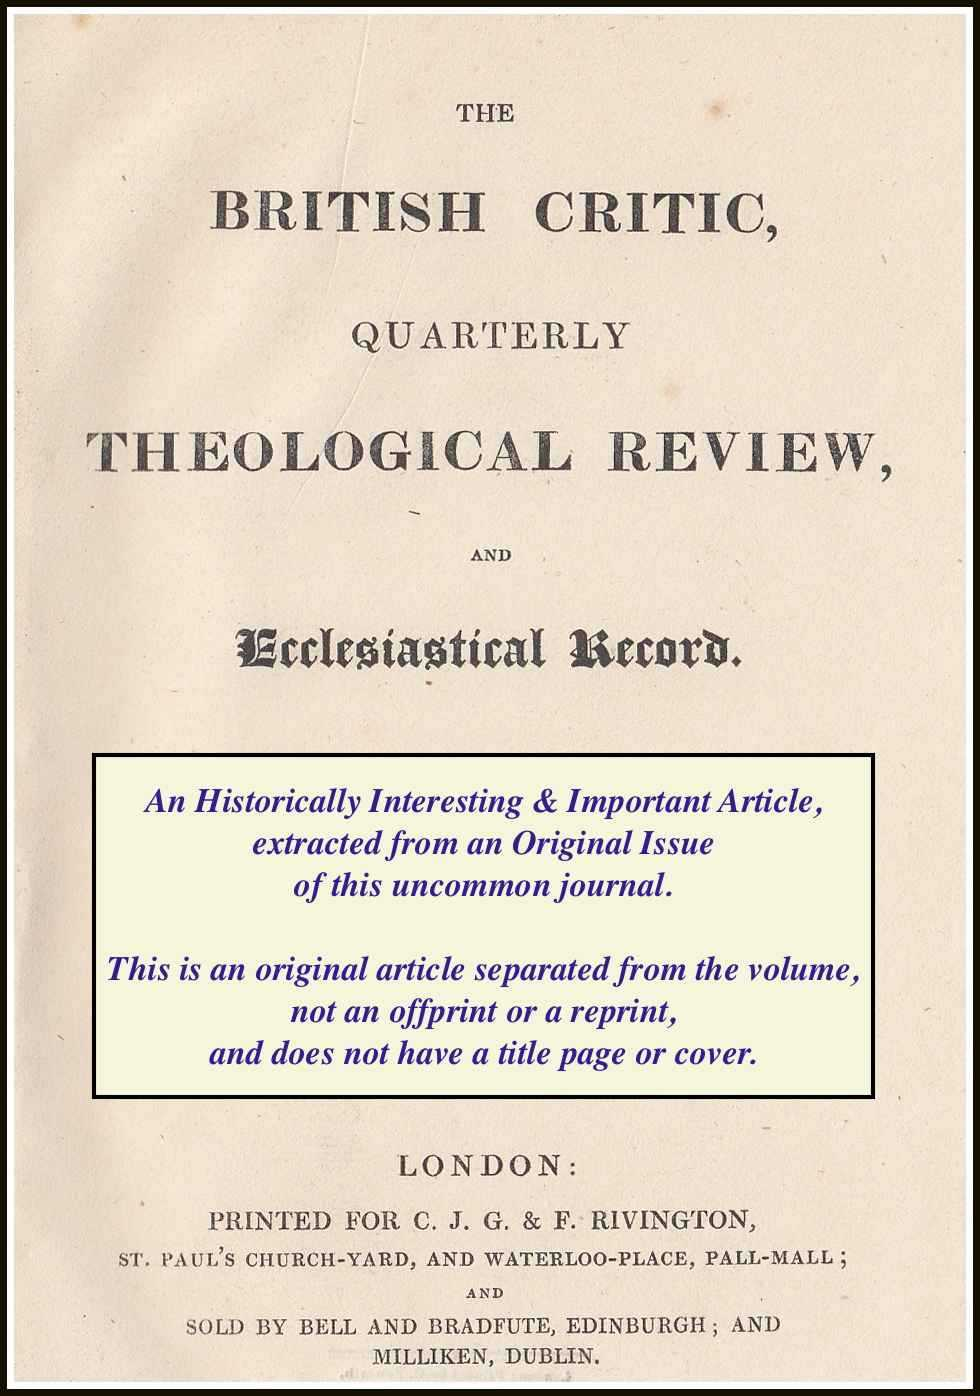 ROSE, HUGH JAMES - On The Study of The Fathers of The Church. A rare original article from the British Critic, 1831.